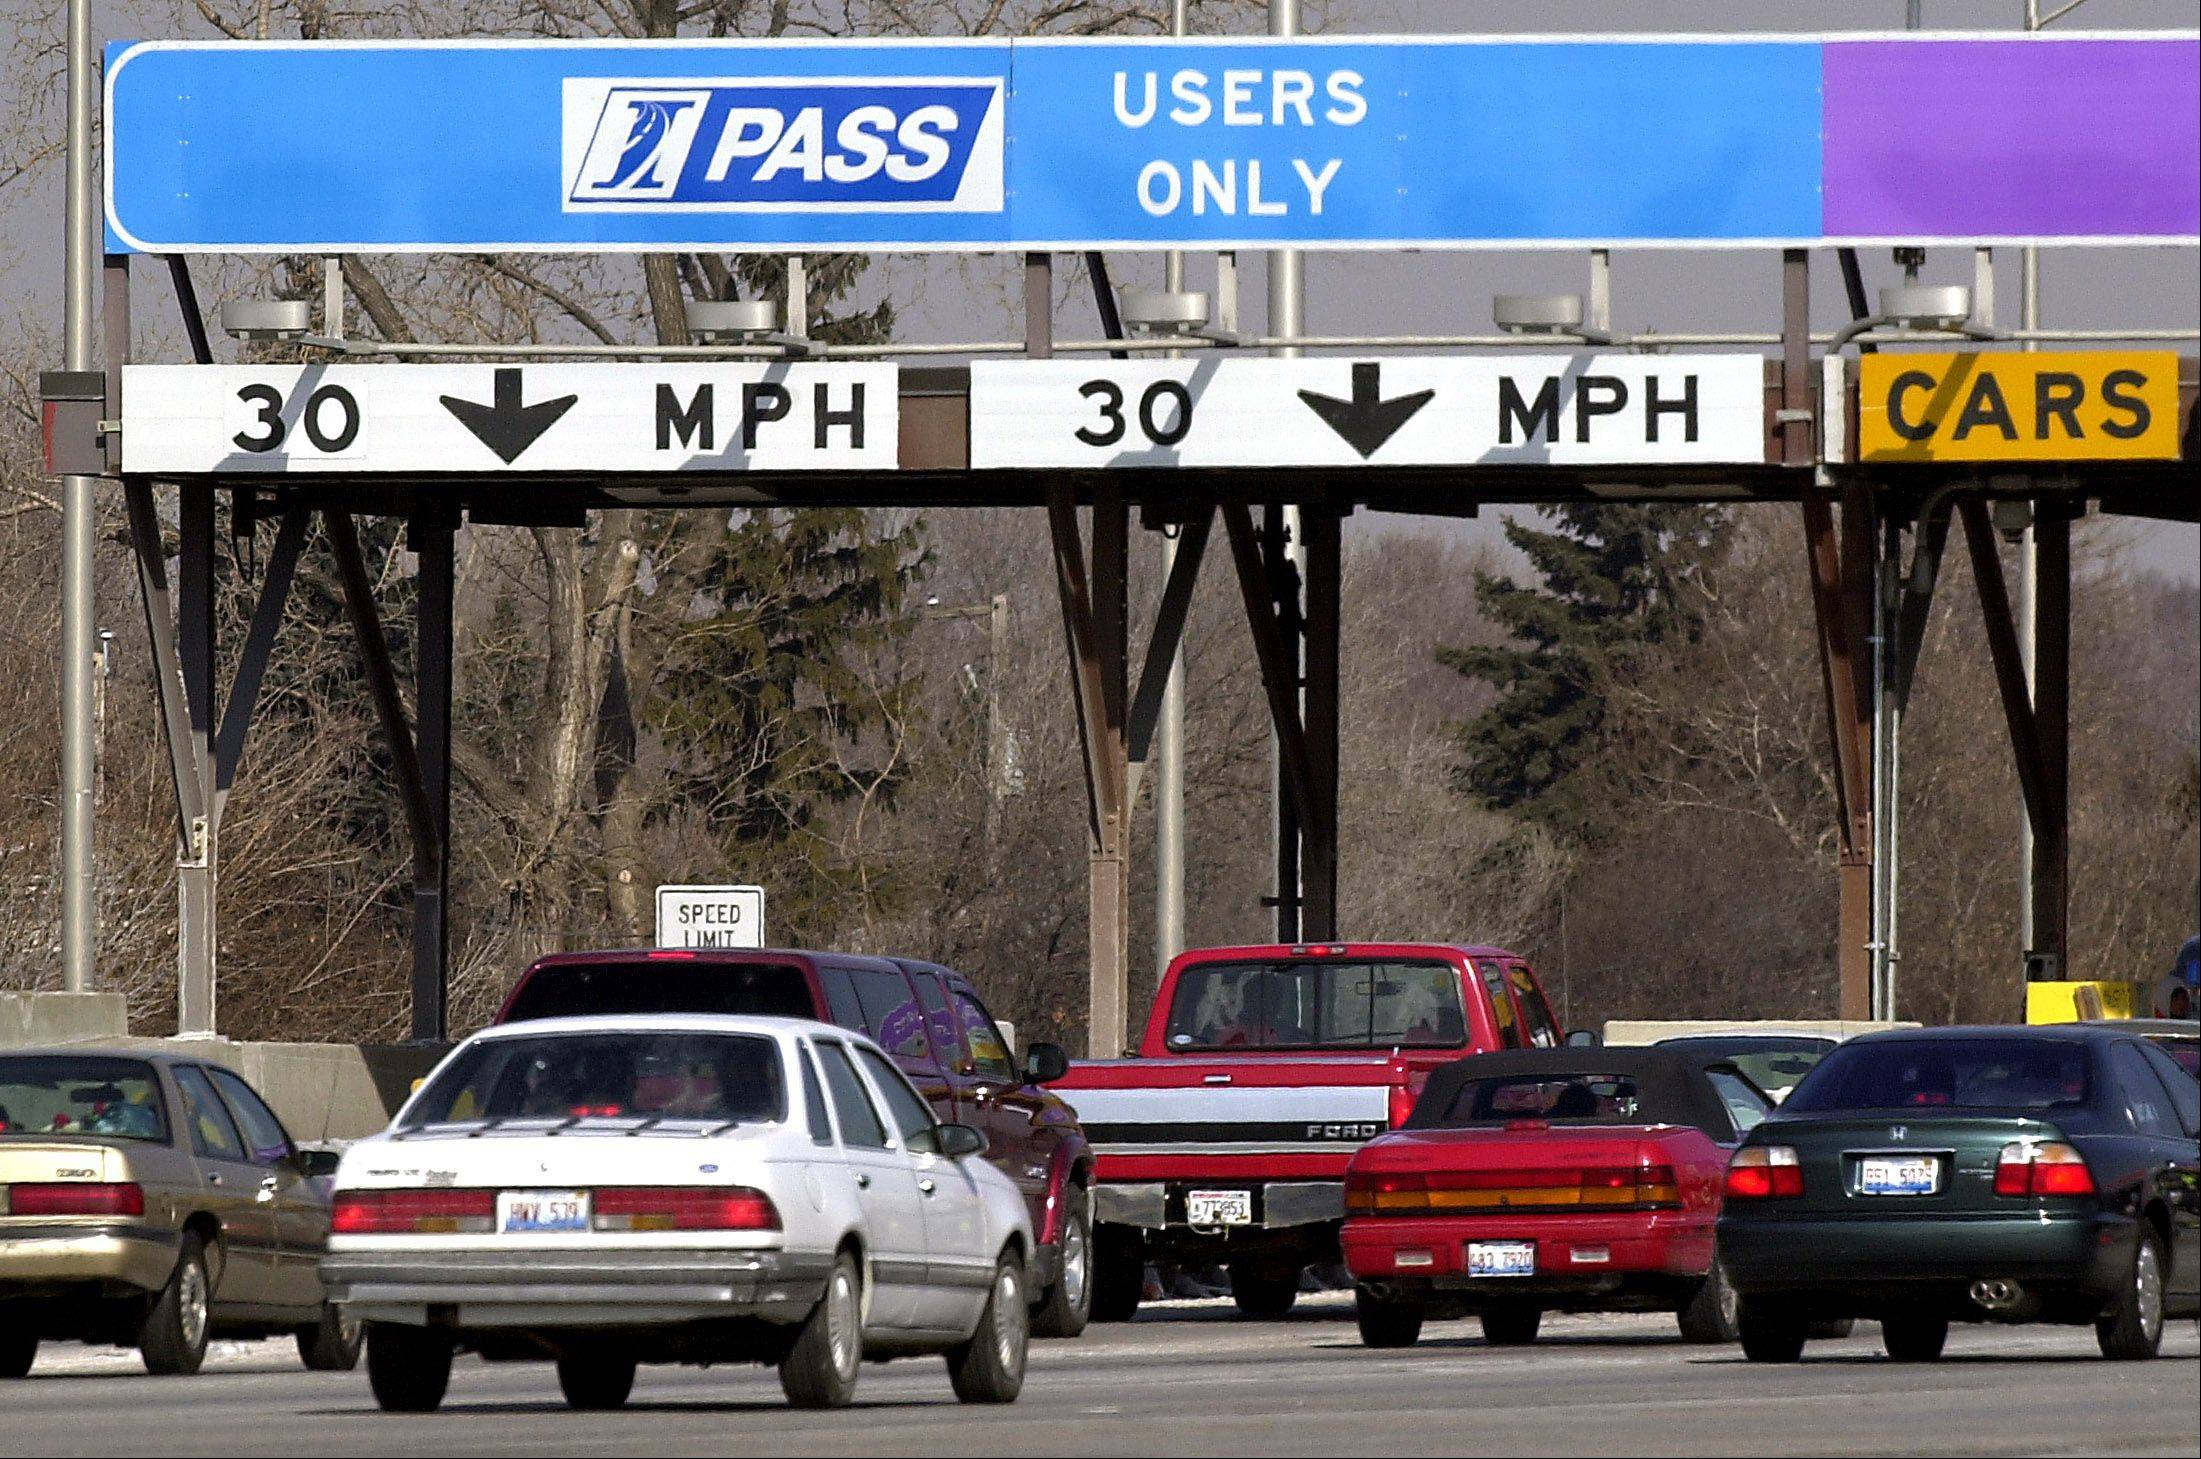 The Illinois Tollway has posted the names of 157 companies on its website along with the amount of money it says each owes. To make the list, a person has to have racked up more than $1,000 in unpaid tolls and fines.